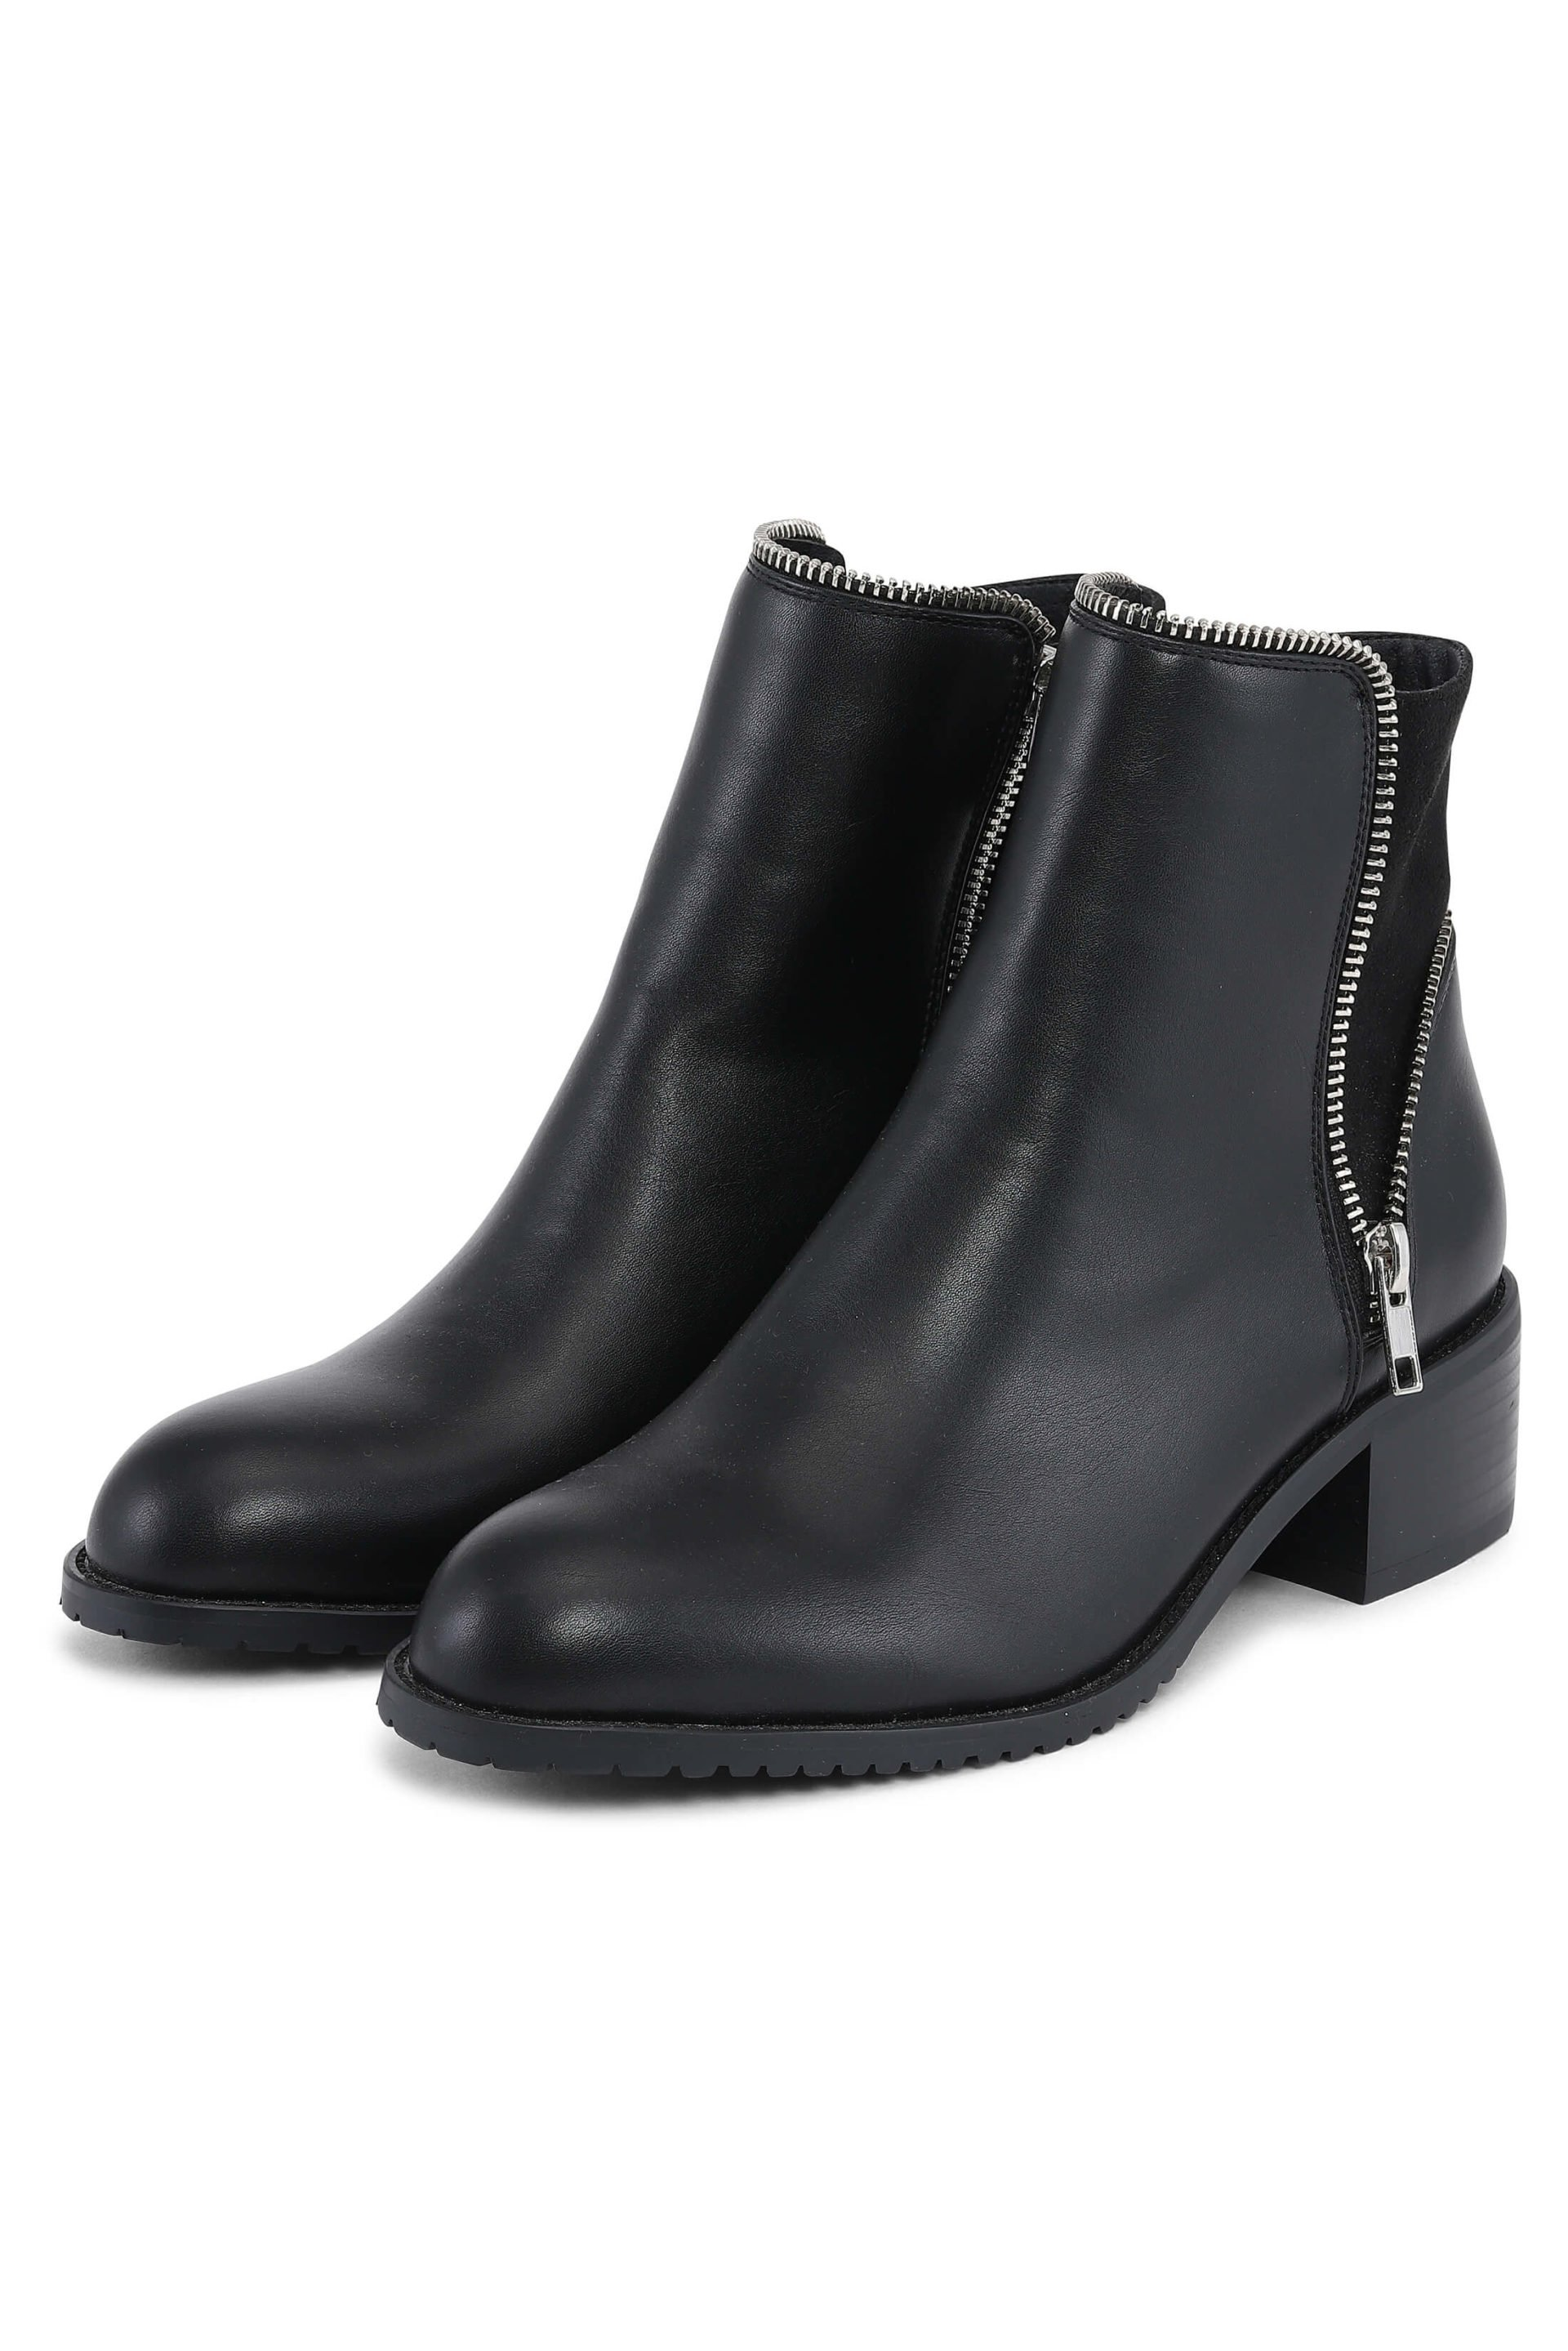 Cool ankleboots with silver-coloured zipper